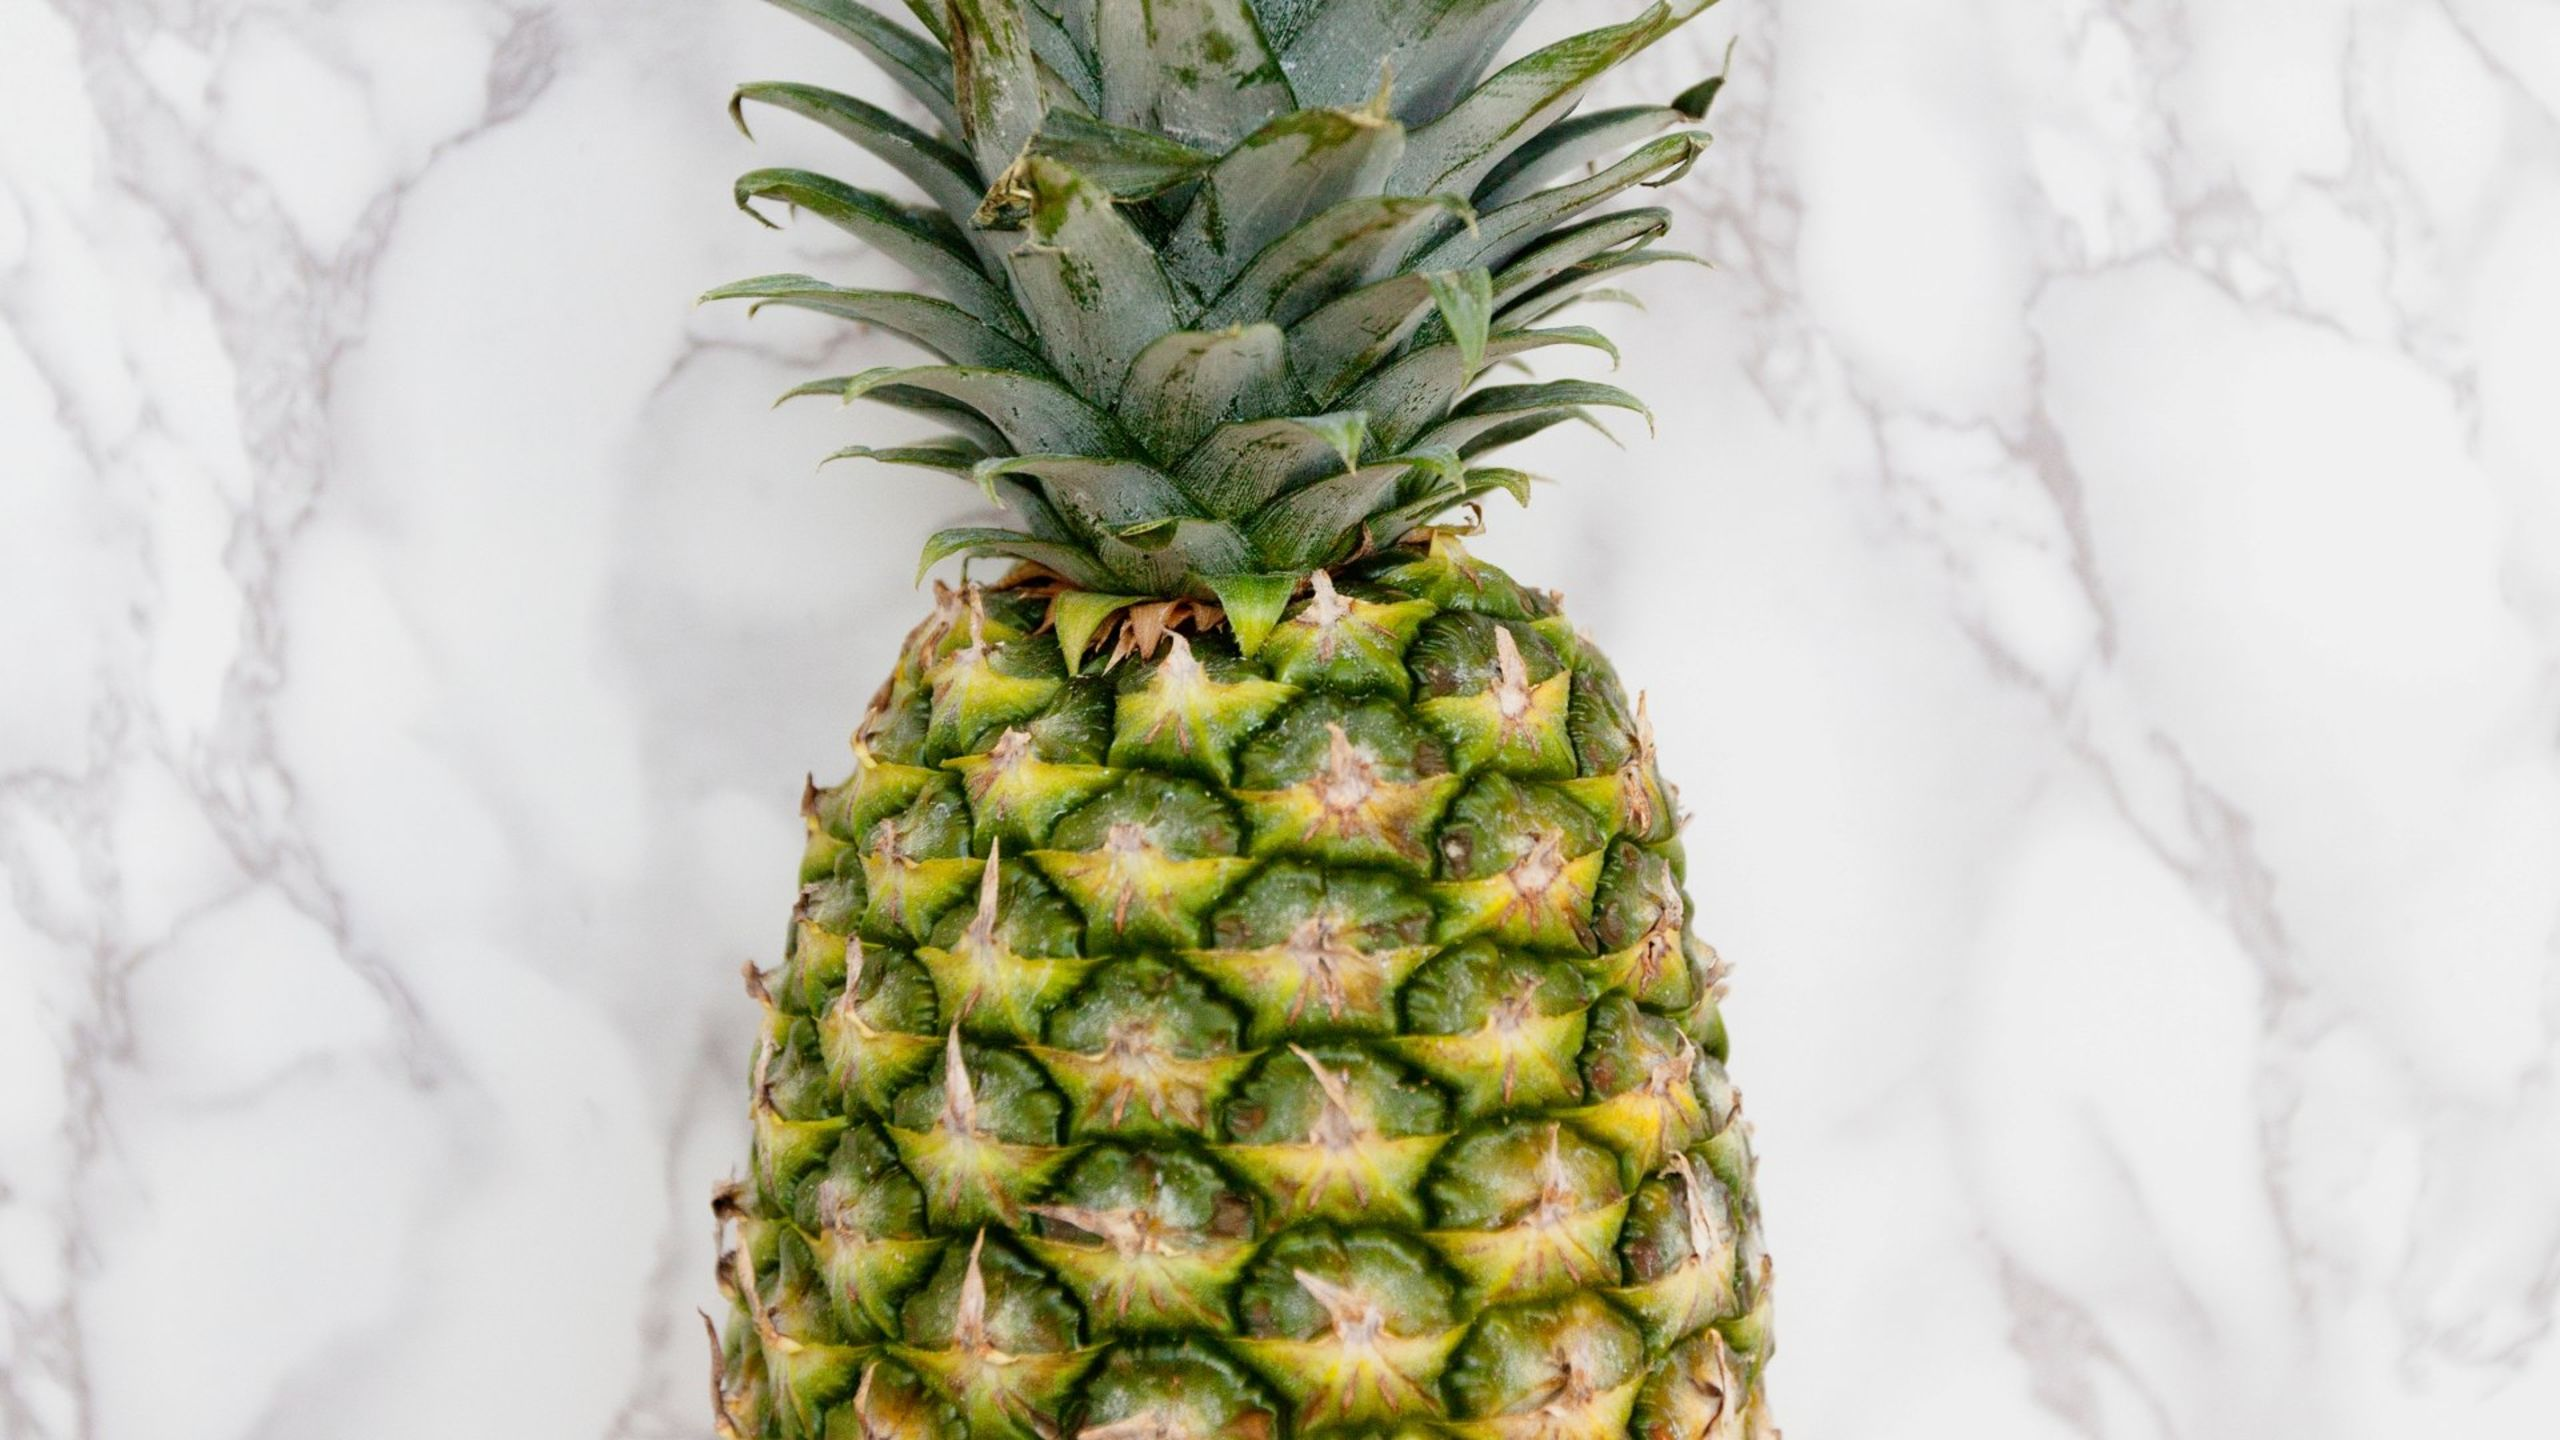 PINEAPPLE =  SOUTHERN HOSPITALITY